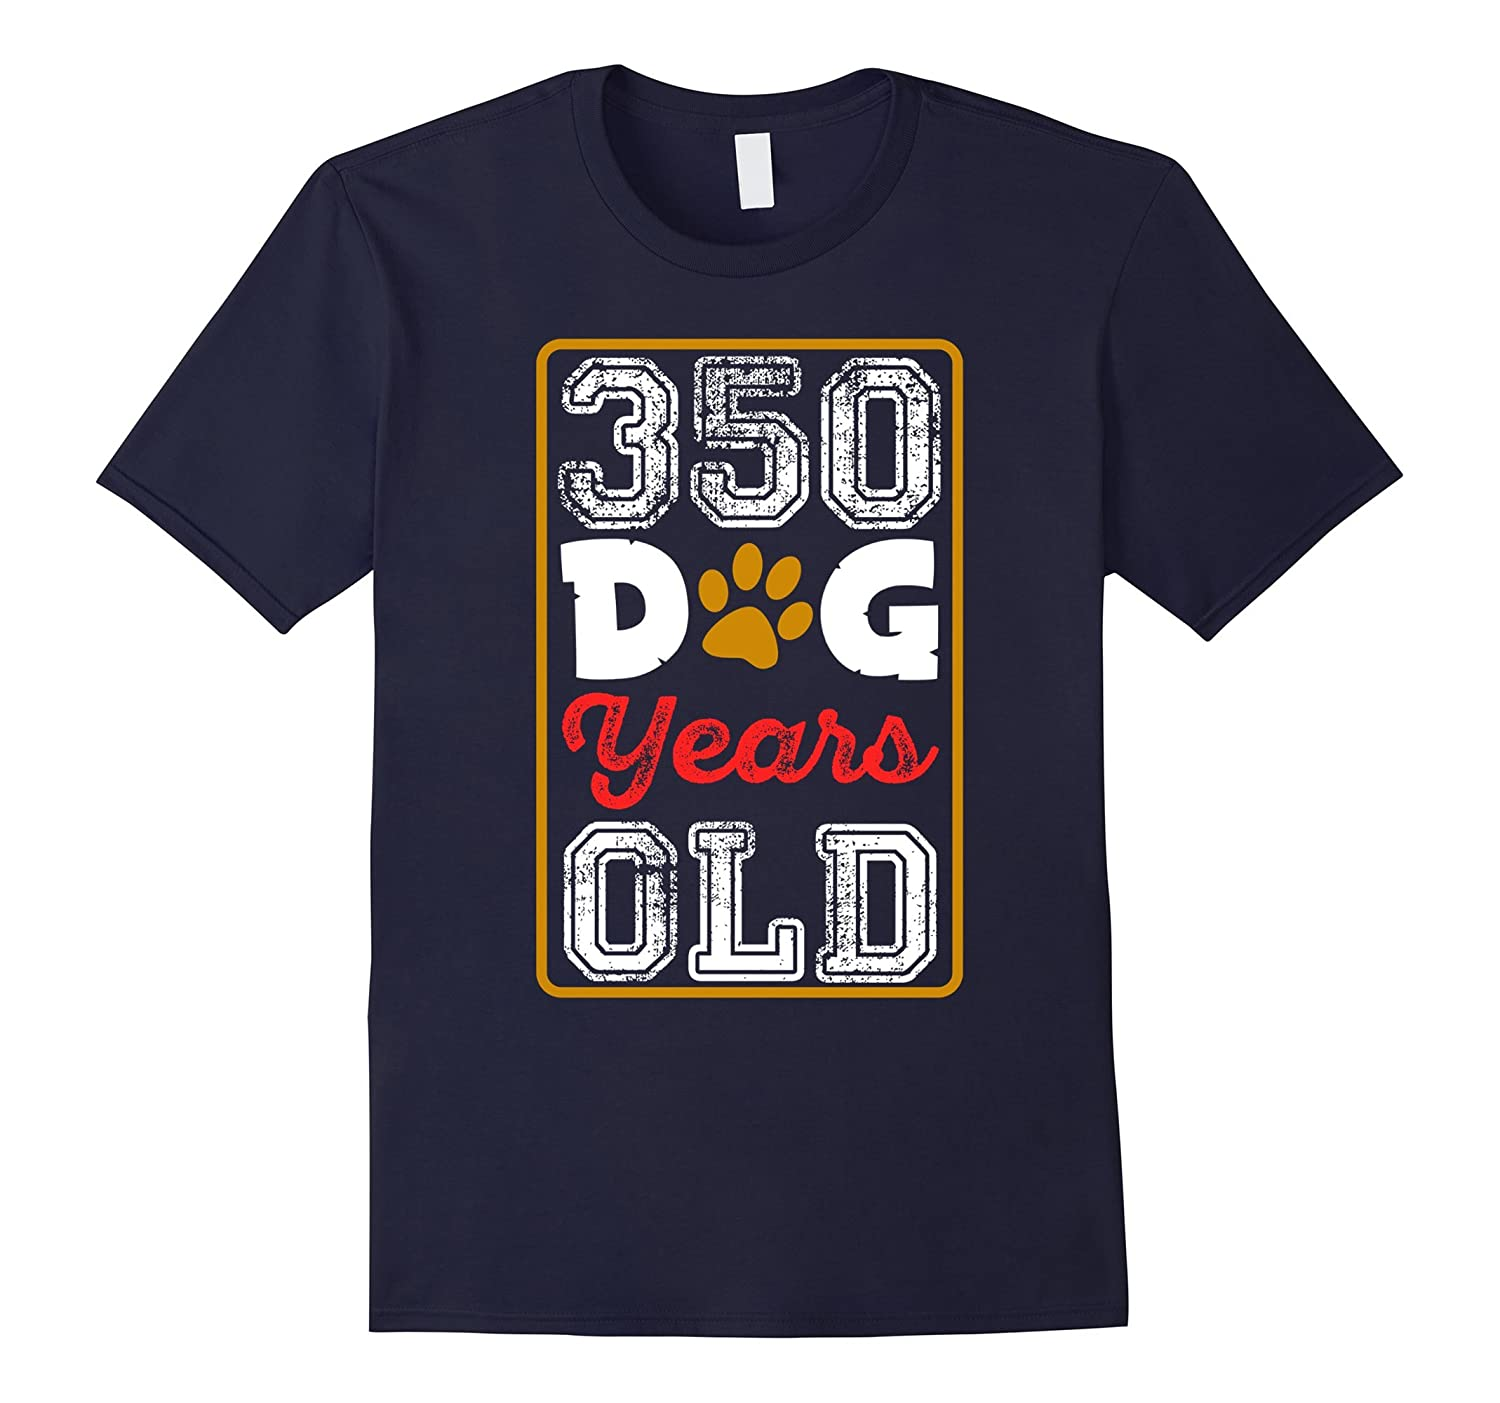 50th Birthday T Shirt - 350 Dog Years Old-BN